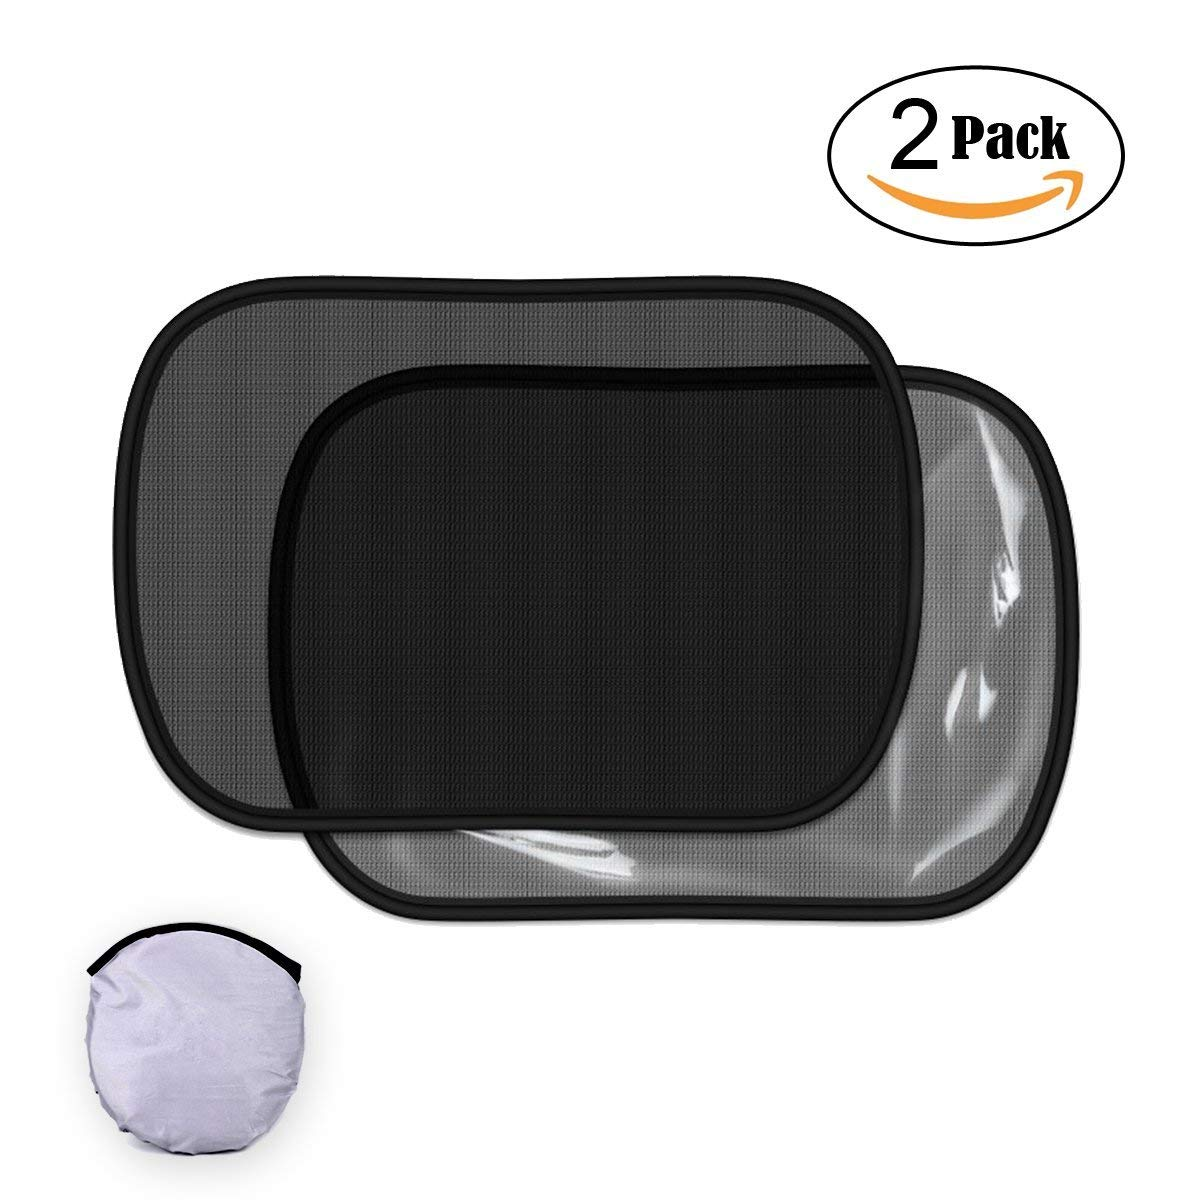 30 cm 2 Pack Car Window Sun Shades for Baby Static Cling Car Side Window Sun Visor for Kids Protect Child from Sun Glare Blocking Harmful UV Rays and Heat Universal 50